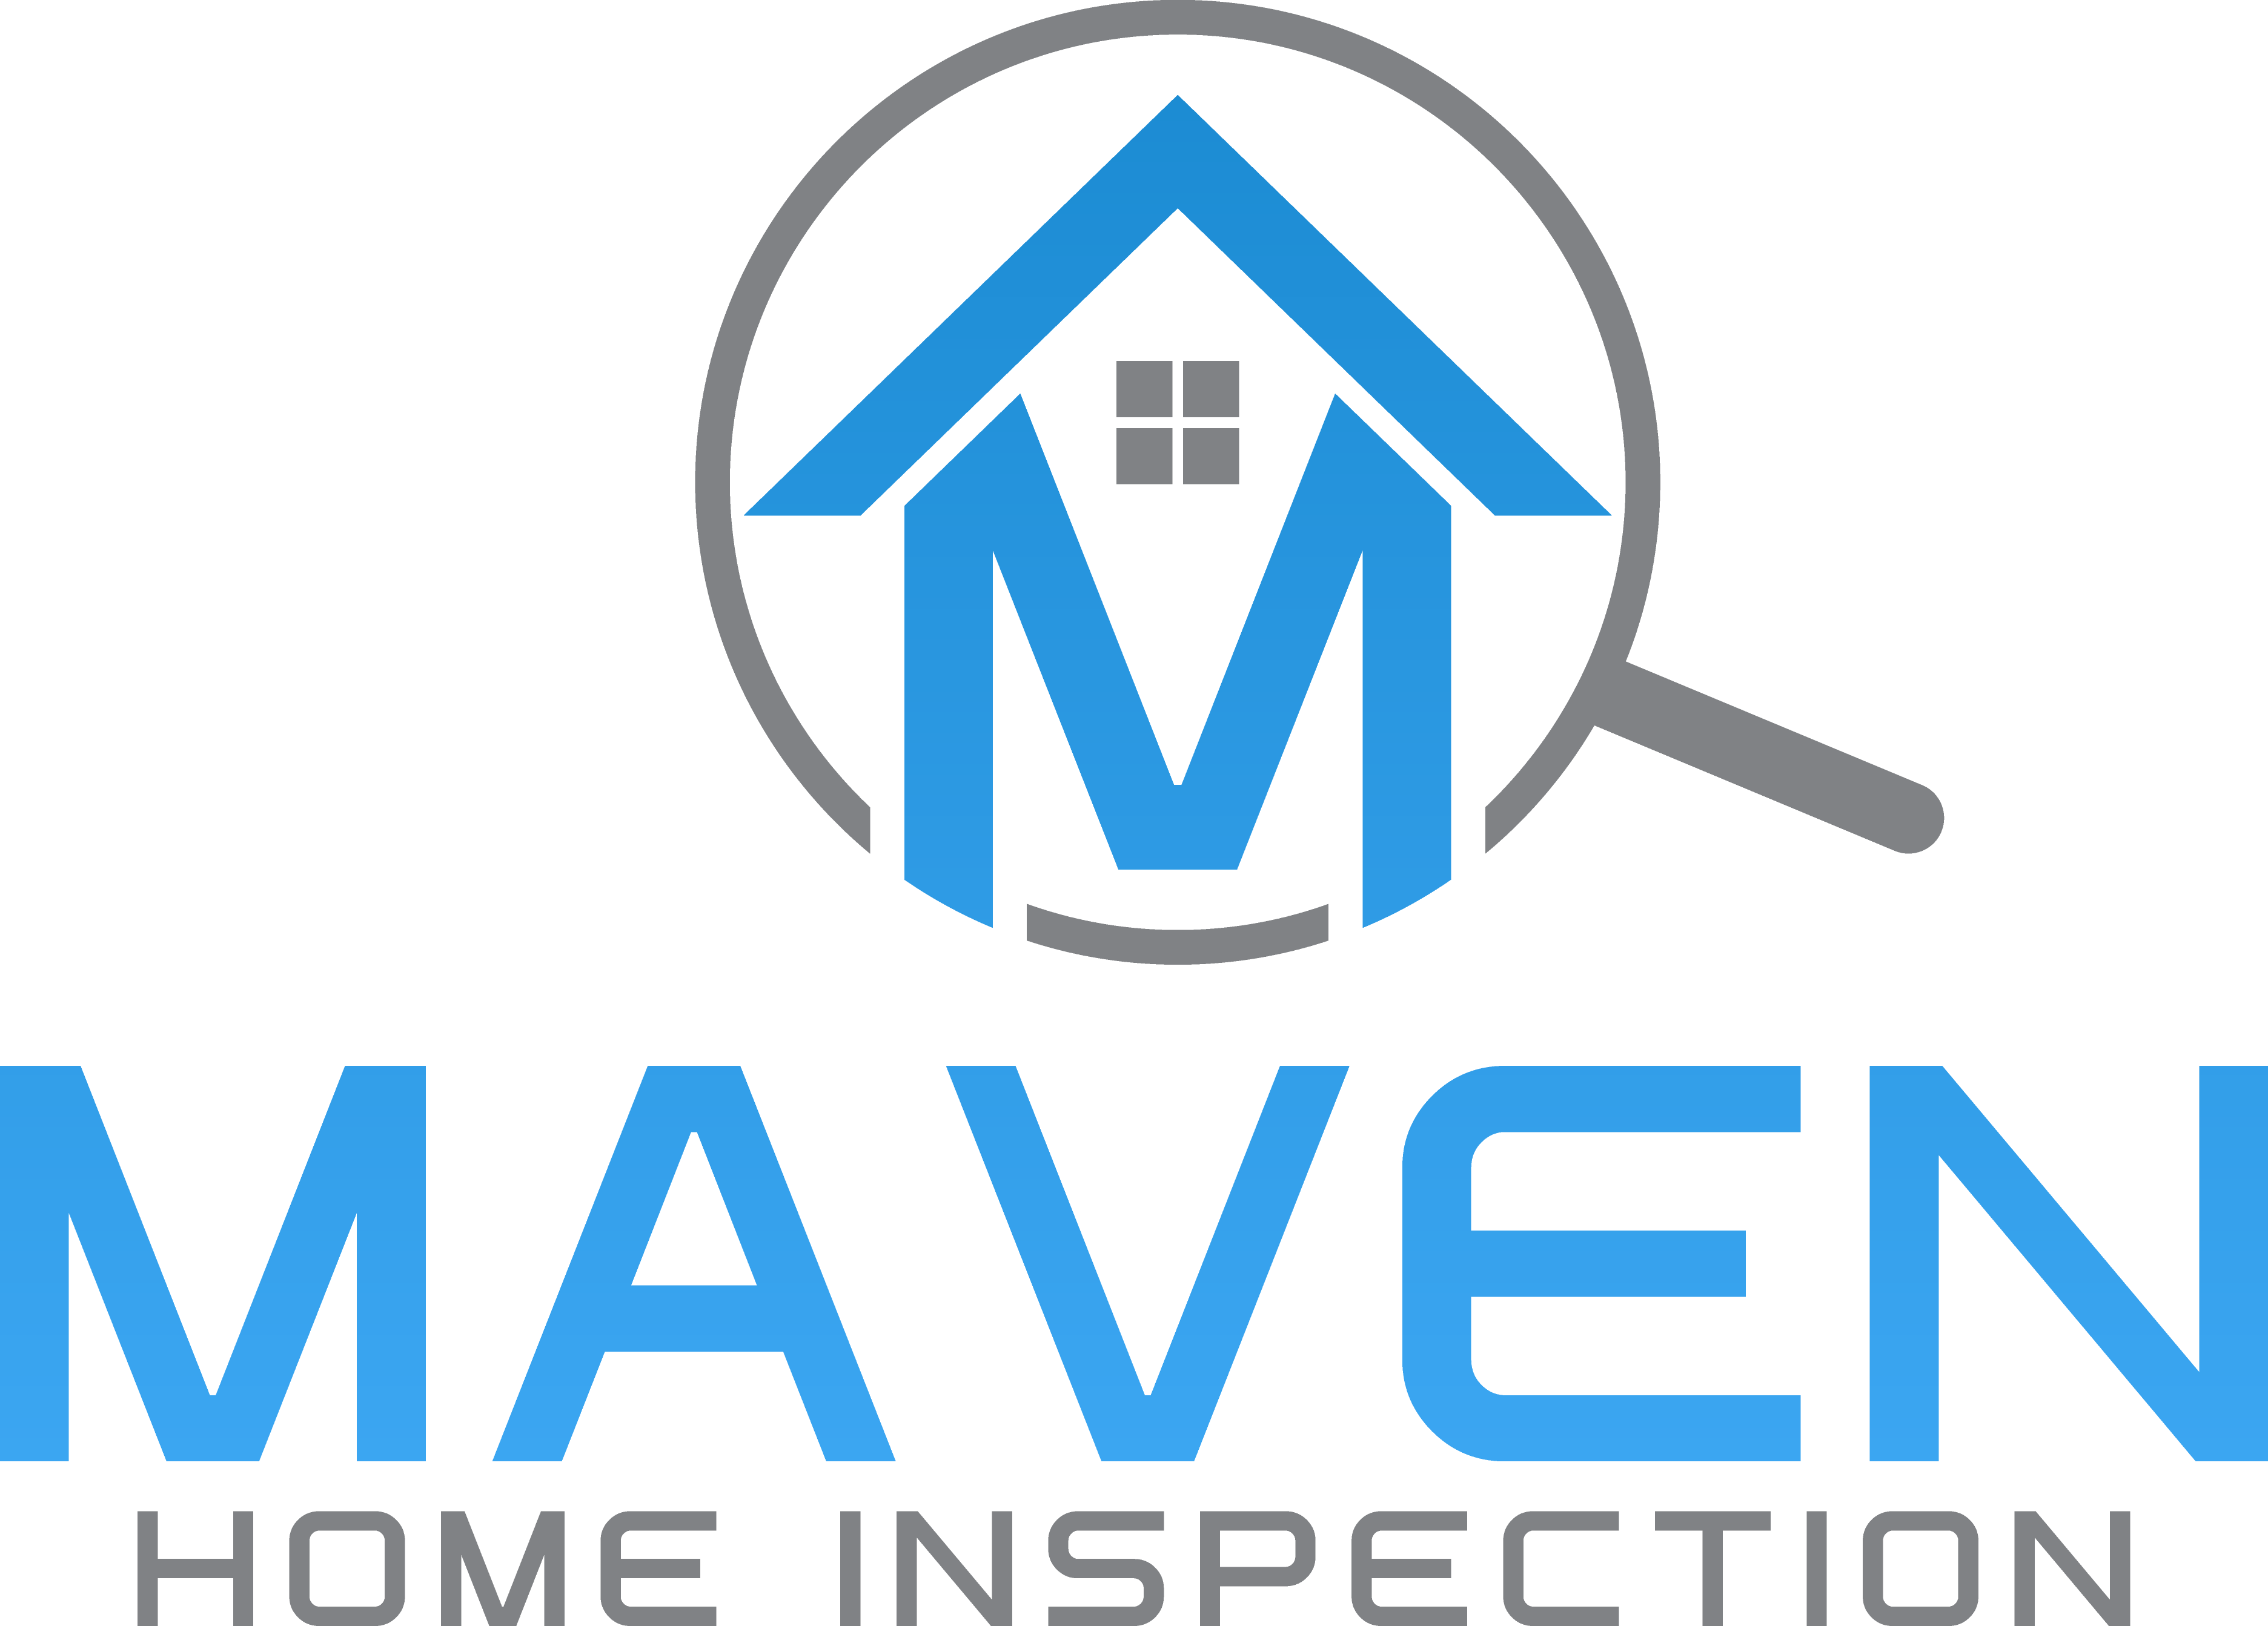 Maven Home Inspection